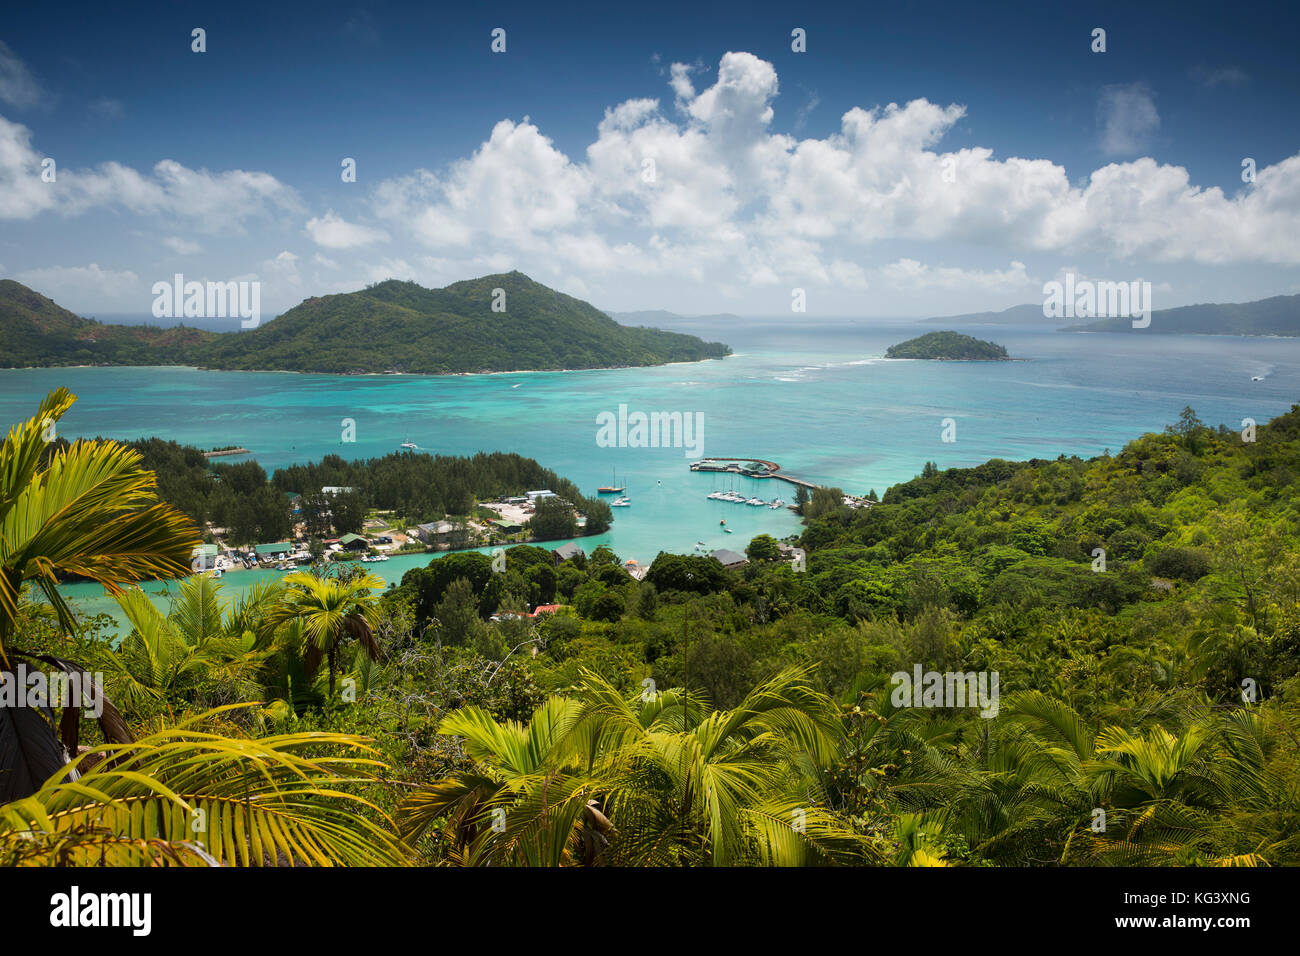 The Seychelles, Praslin, Baie St Anne elevated view from Fond Ferdinand Nature Reserve - Stock Image